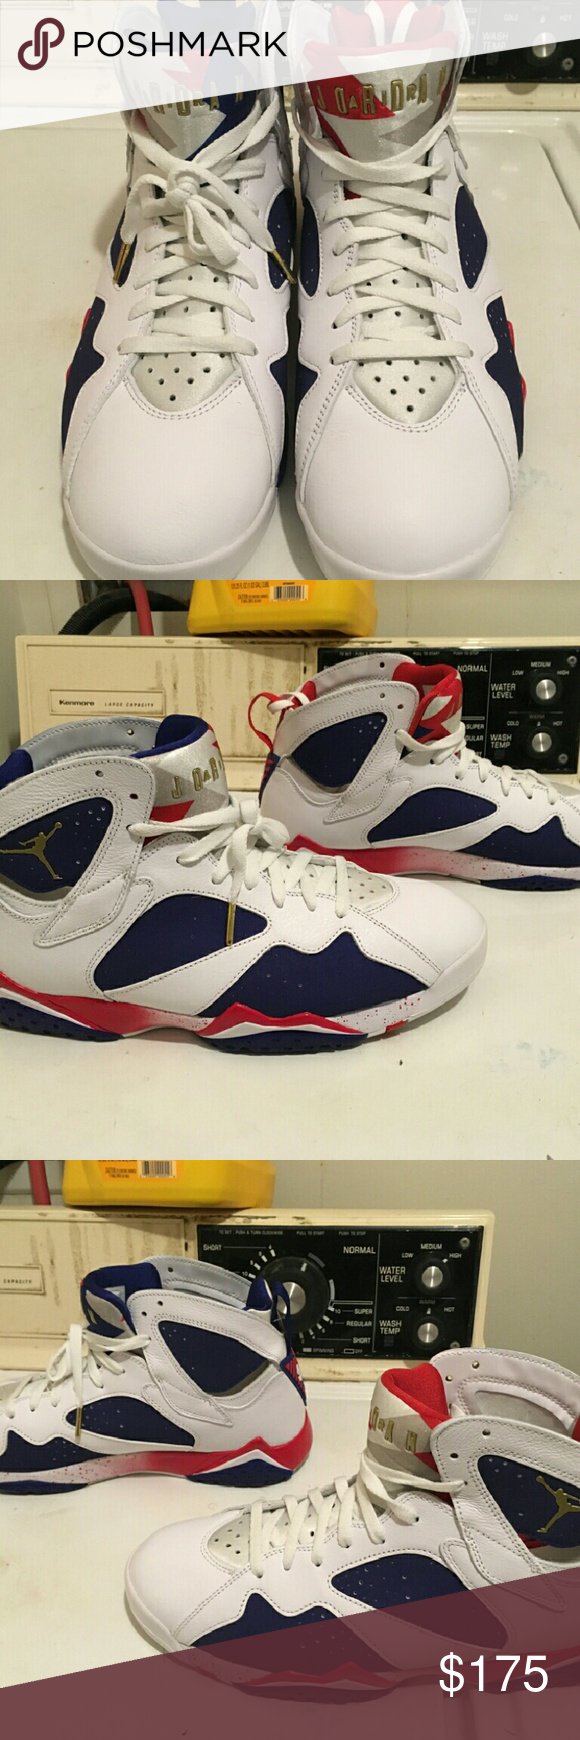 ed906a957d94 Air Jordan Retro 7 Olympics Never worn outside of Foot Locker Jordan Shoes  Sneakers